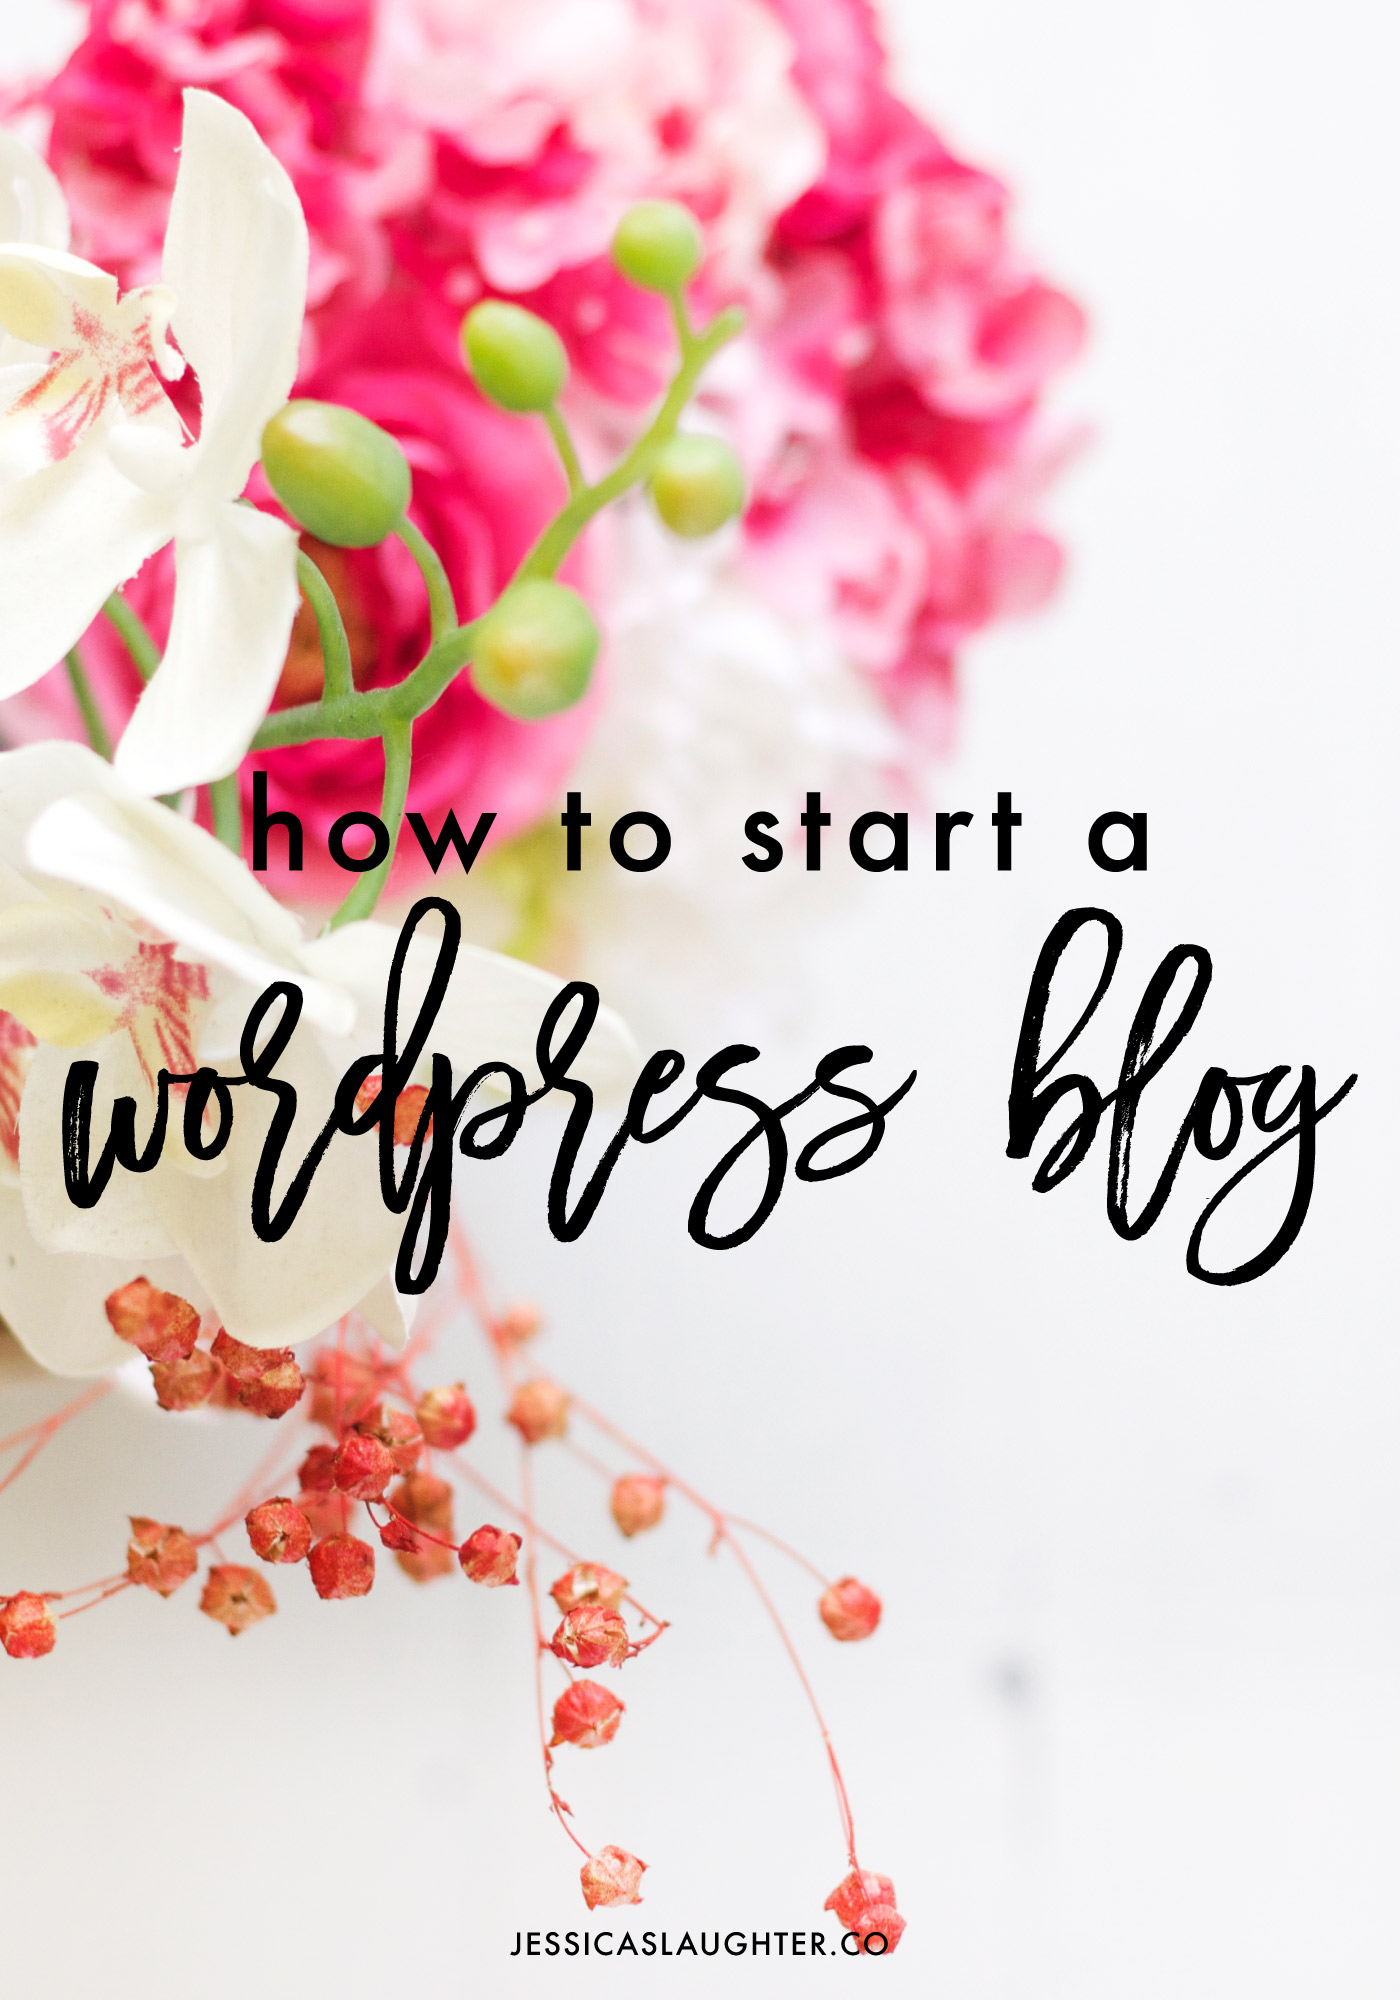 Setting up a blog on WordPress can become very confusing, which is why I created this step-by-step guide to get your new blog up and running!